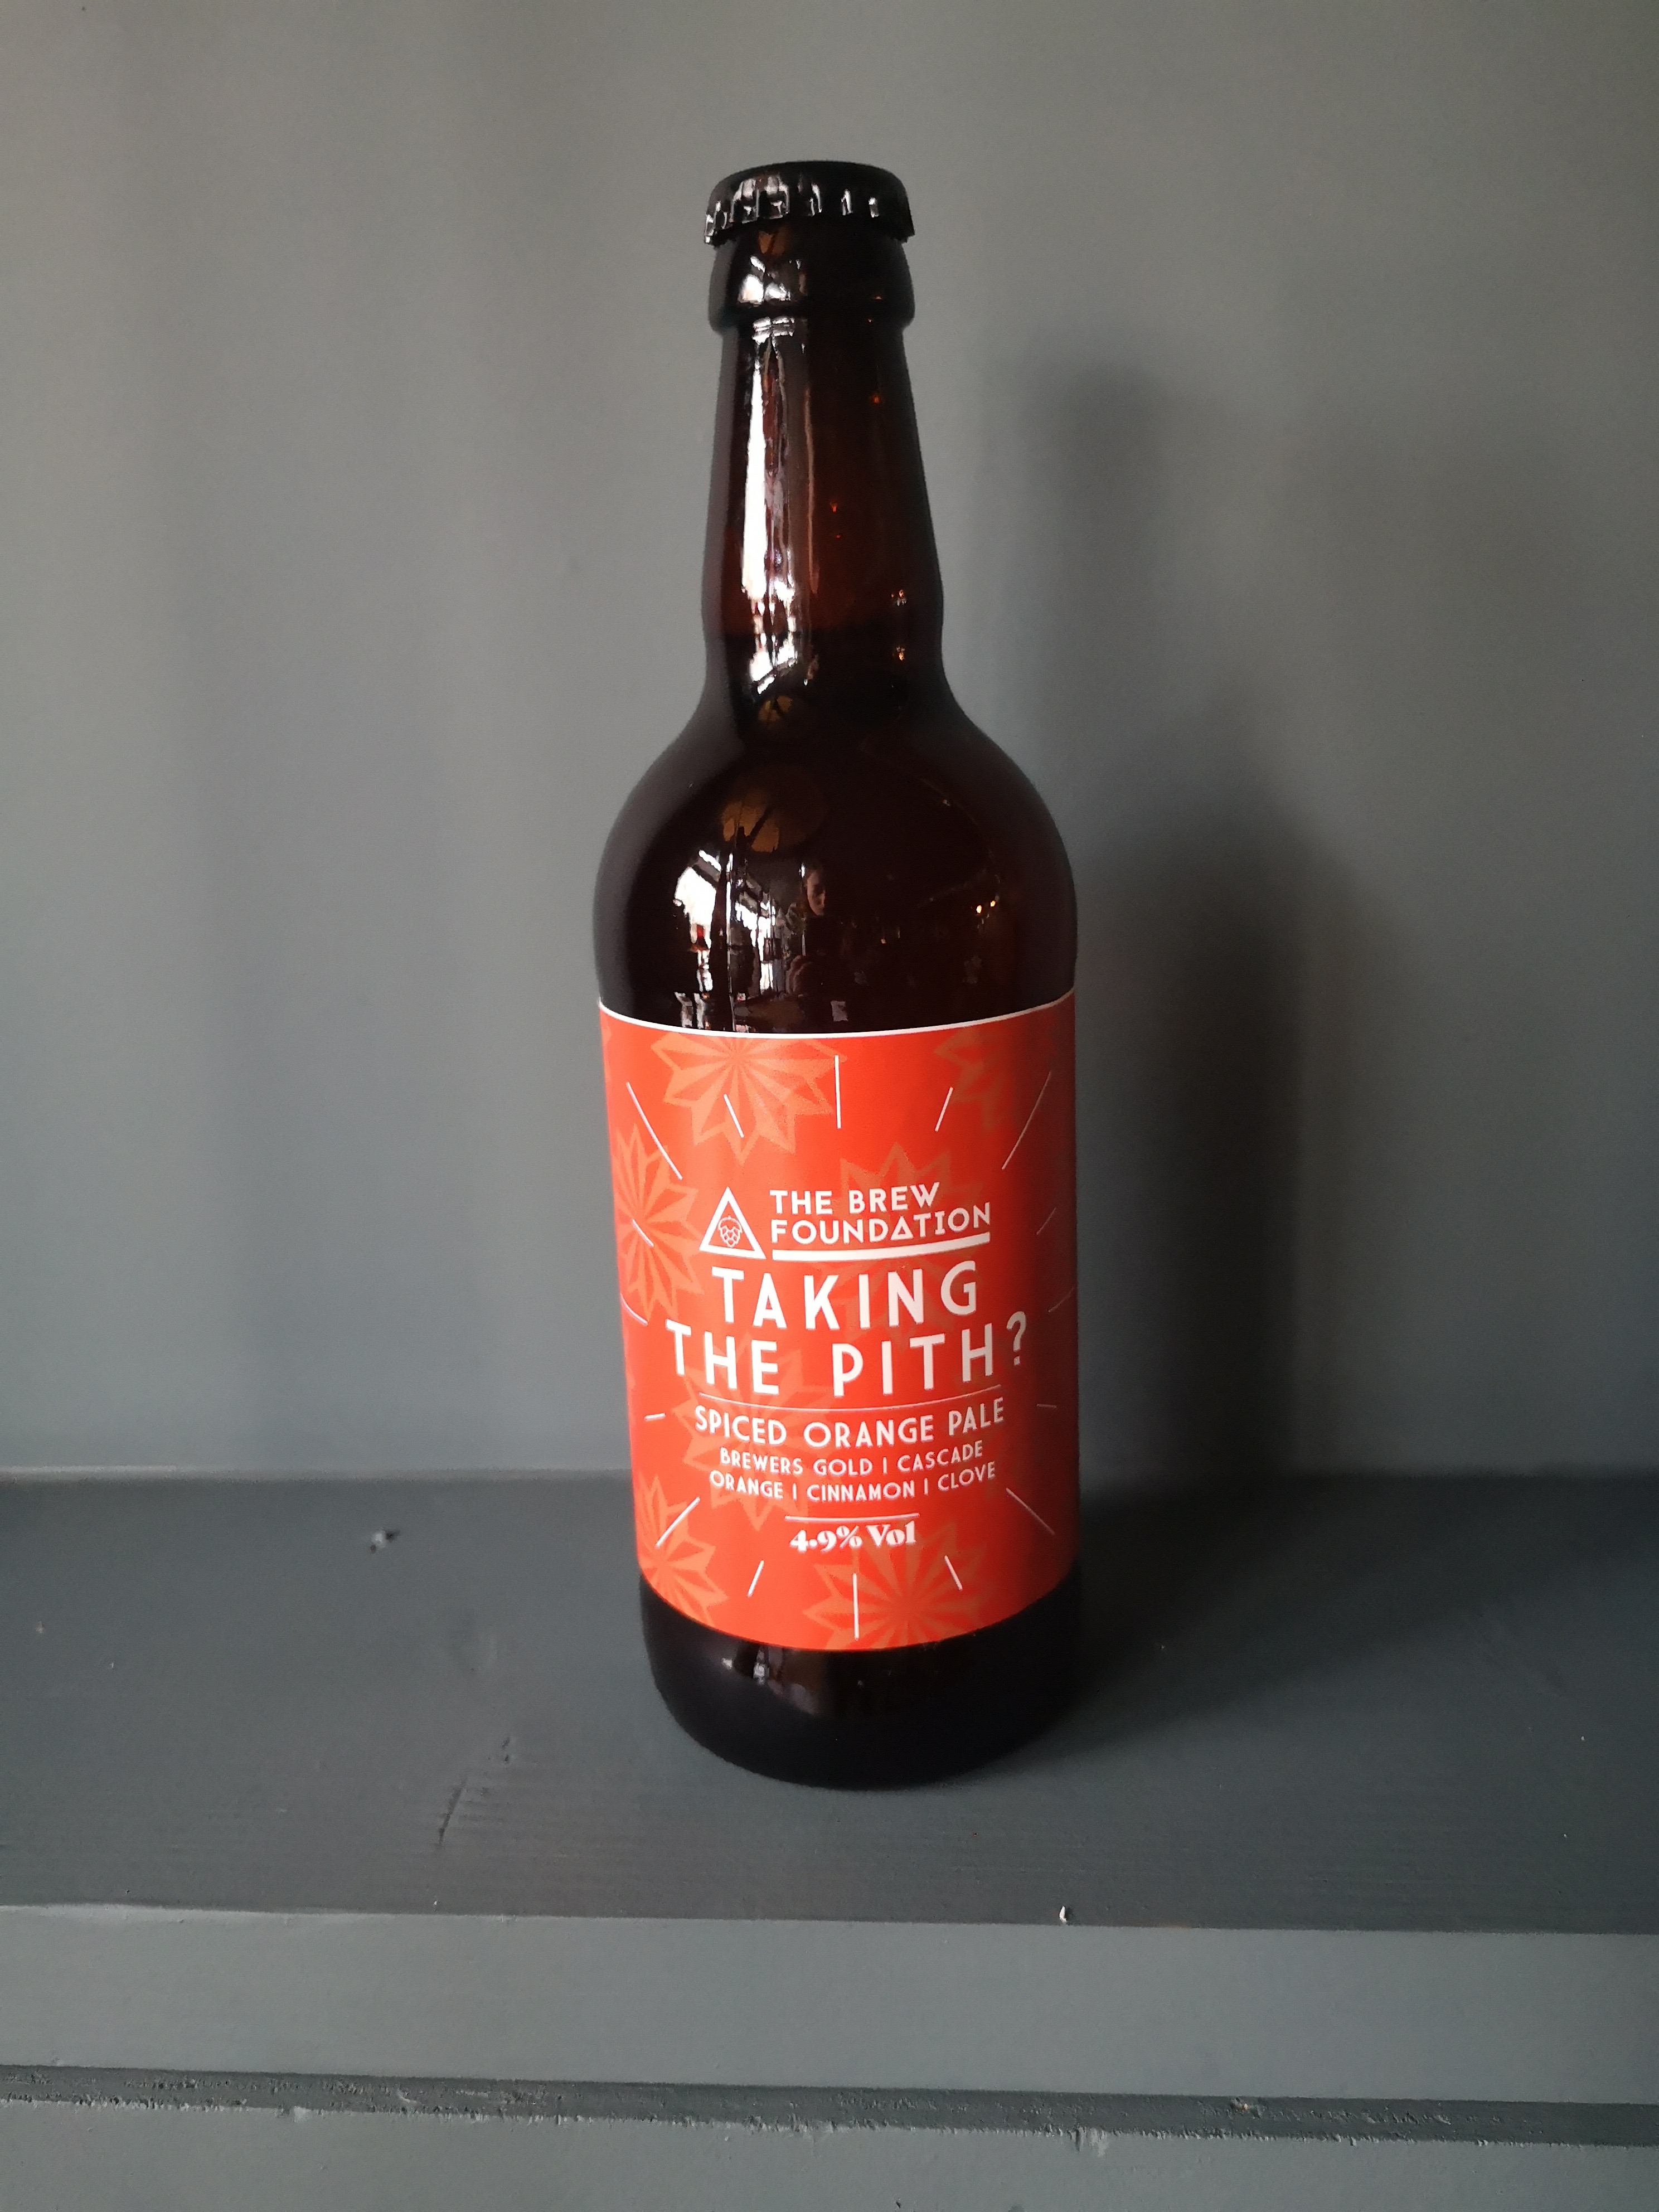 *Brew Foundation - Taking the pith case of 12